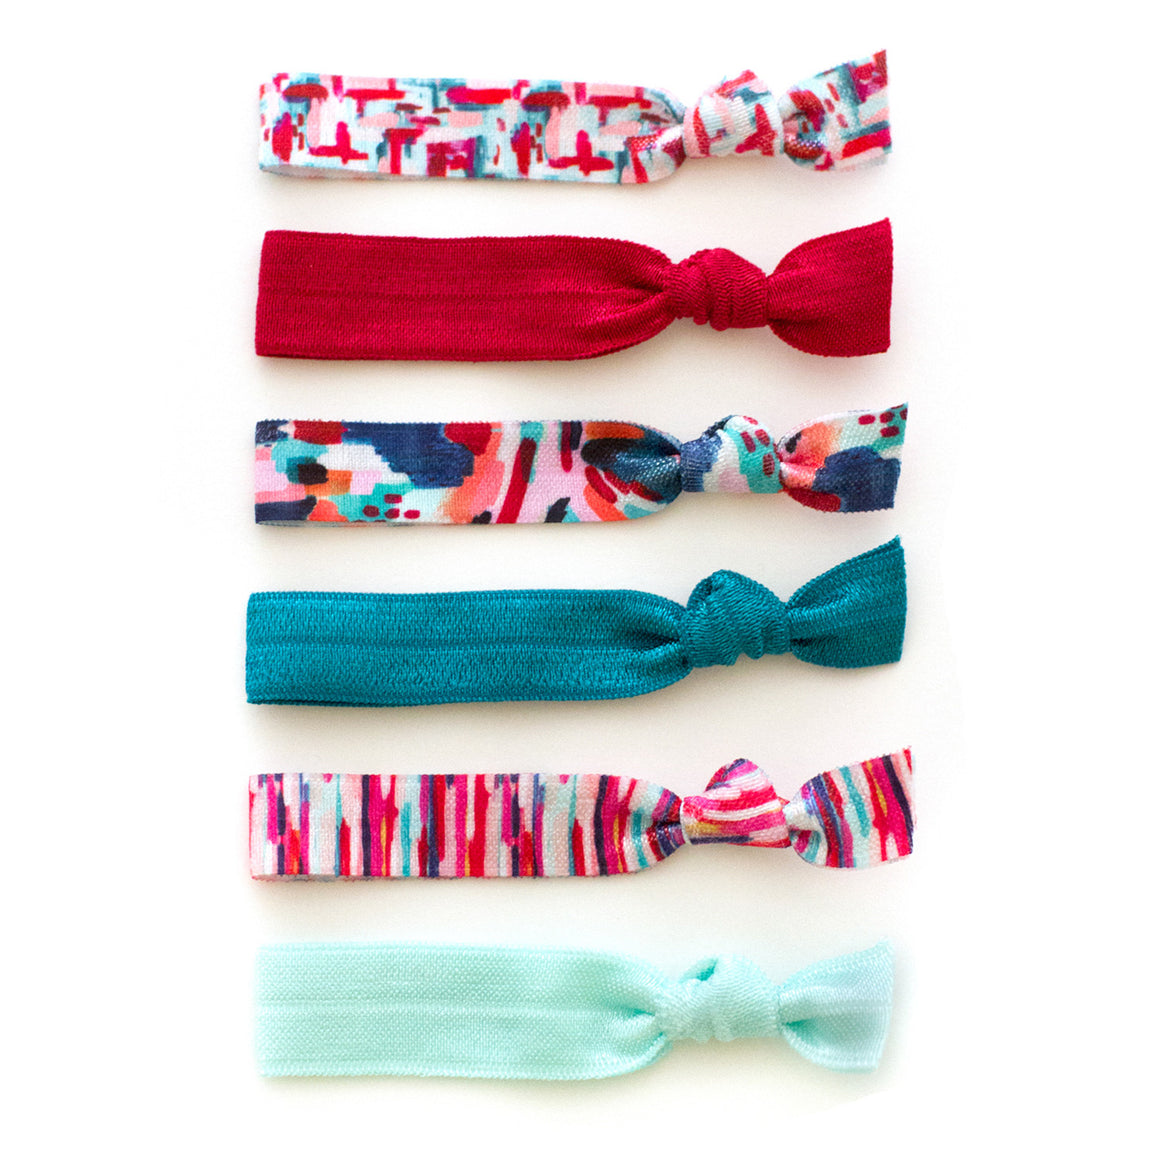 peace love joy hair ties for christmas and holidays stocking stuffers